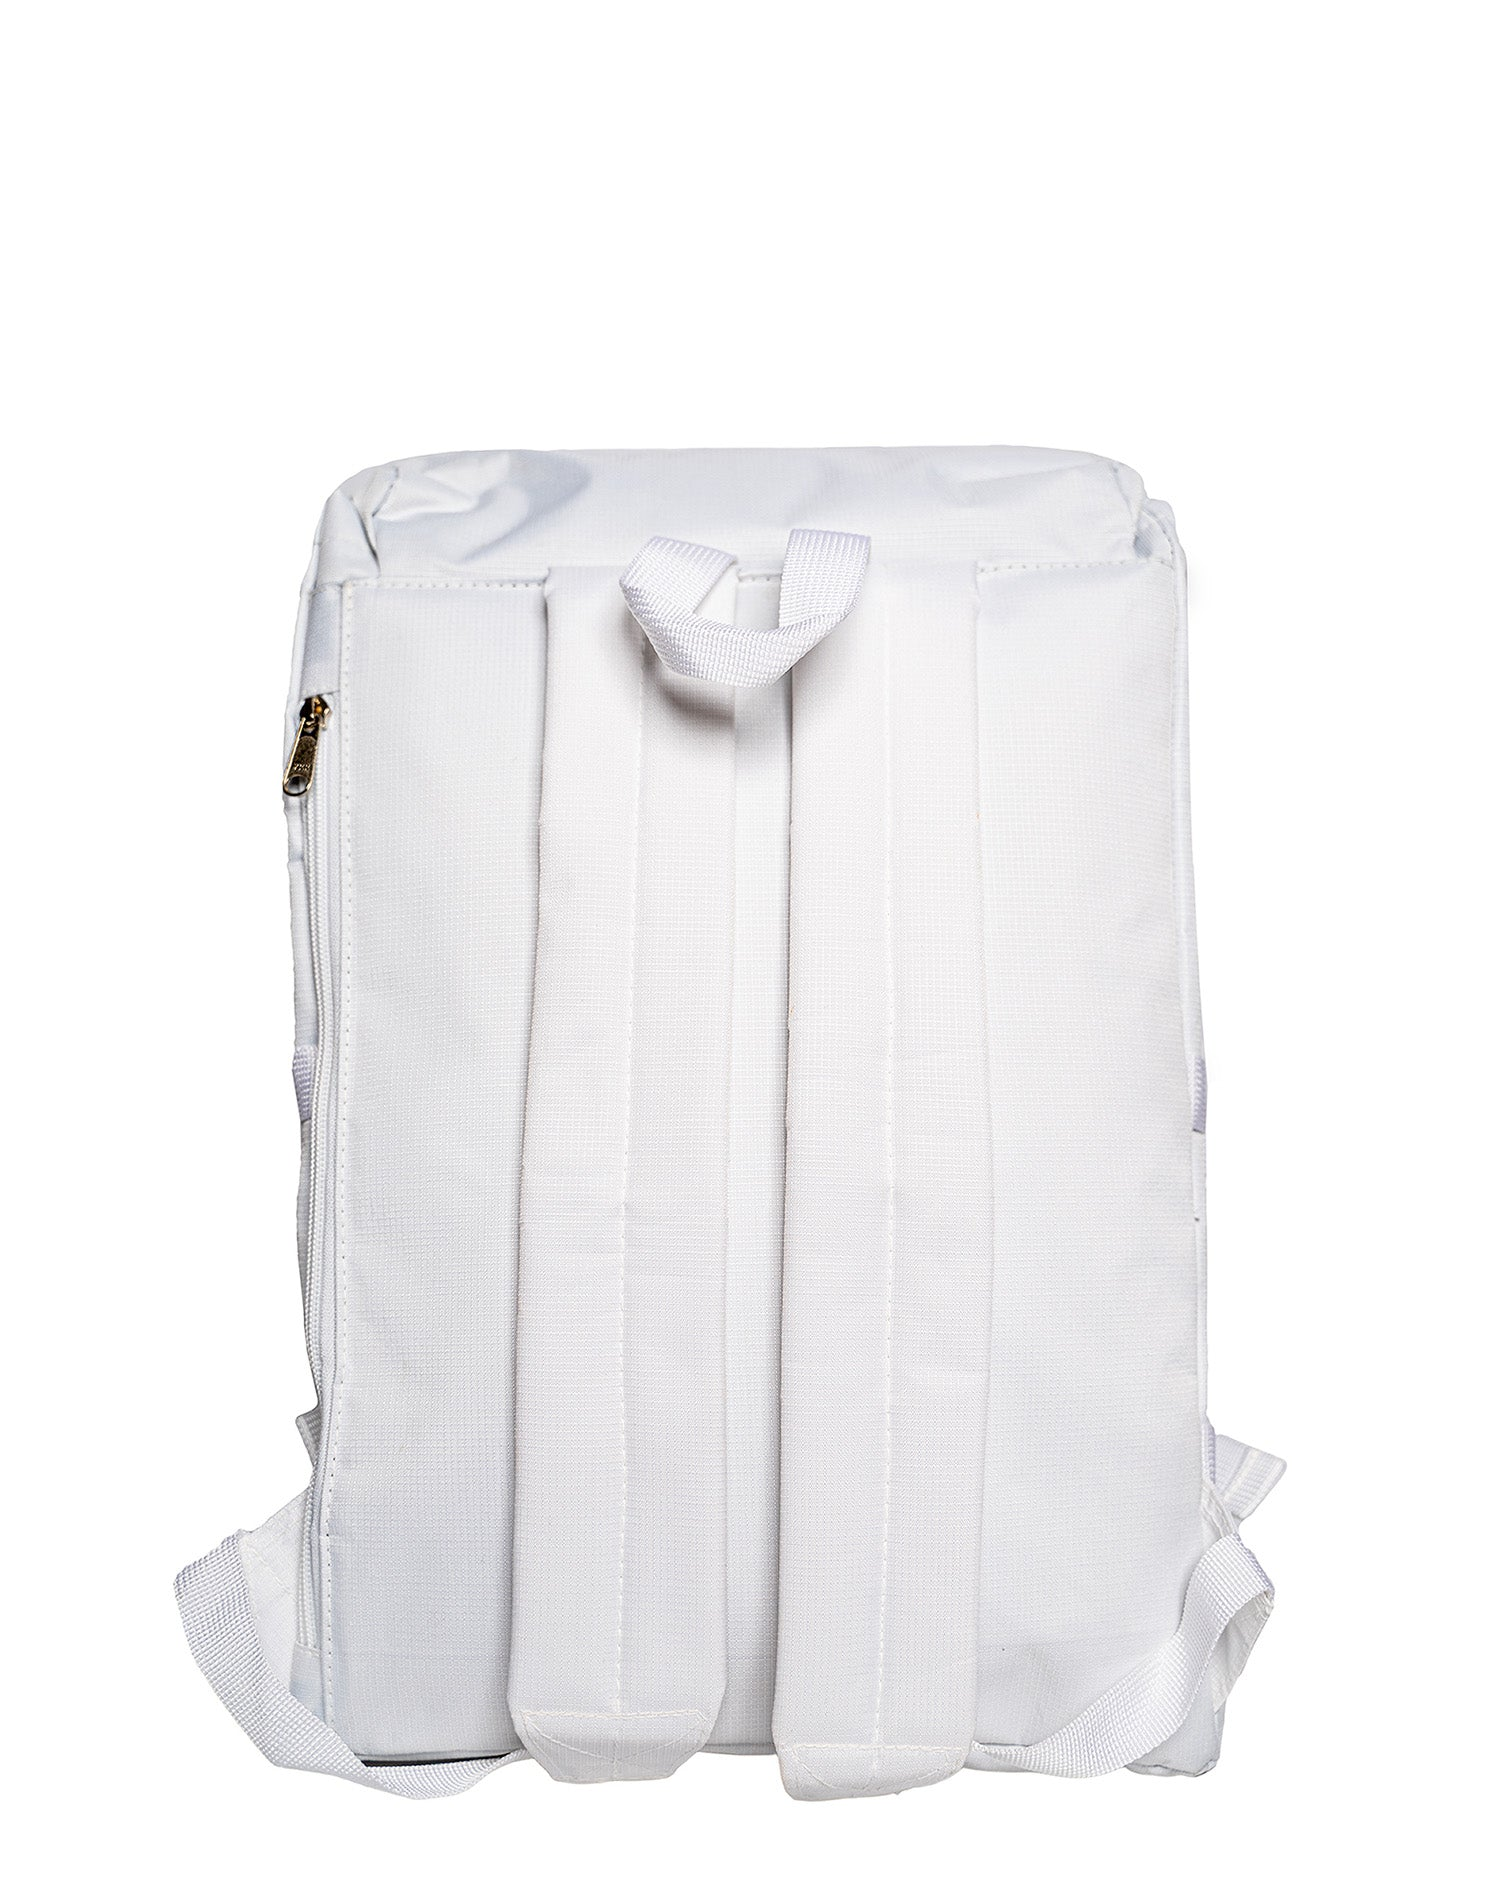 The White Moonset Waterproof Backpack.白色防水背囊